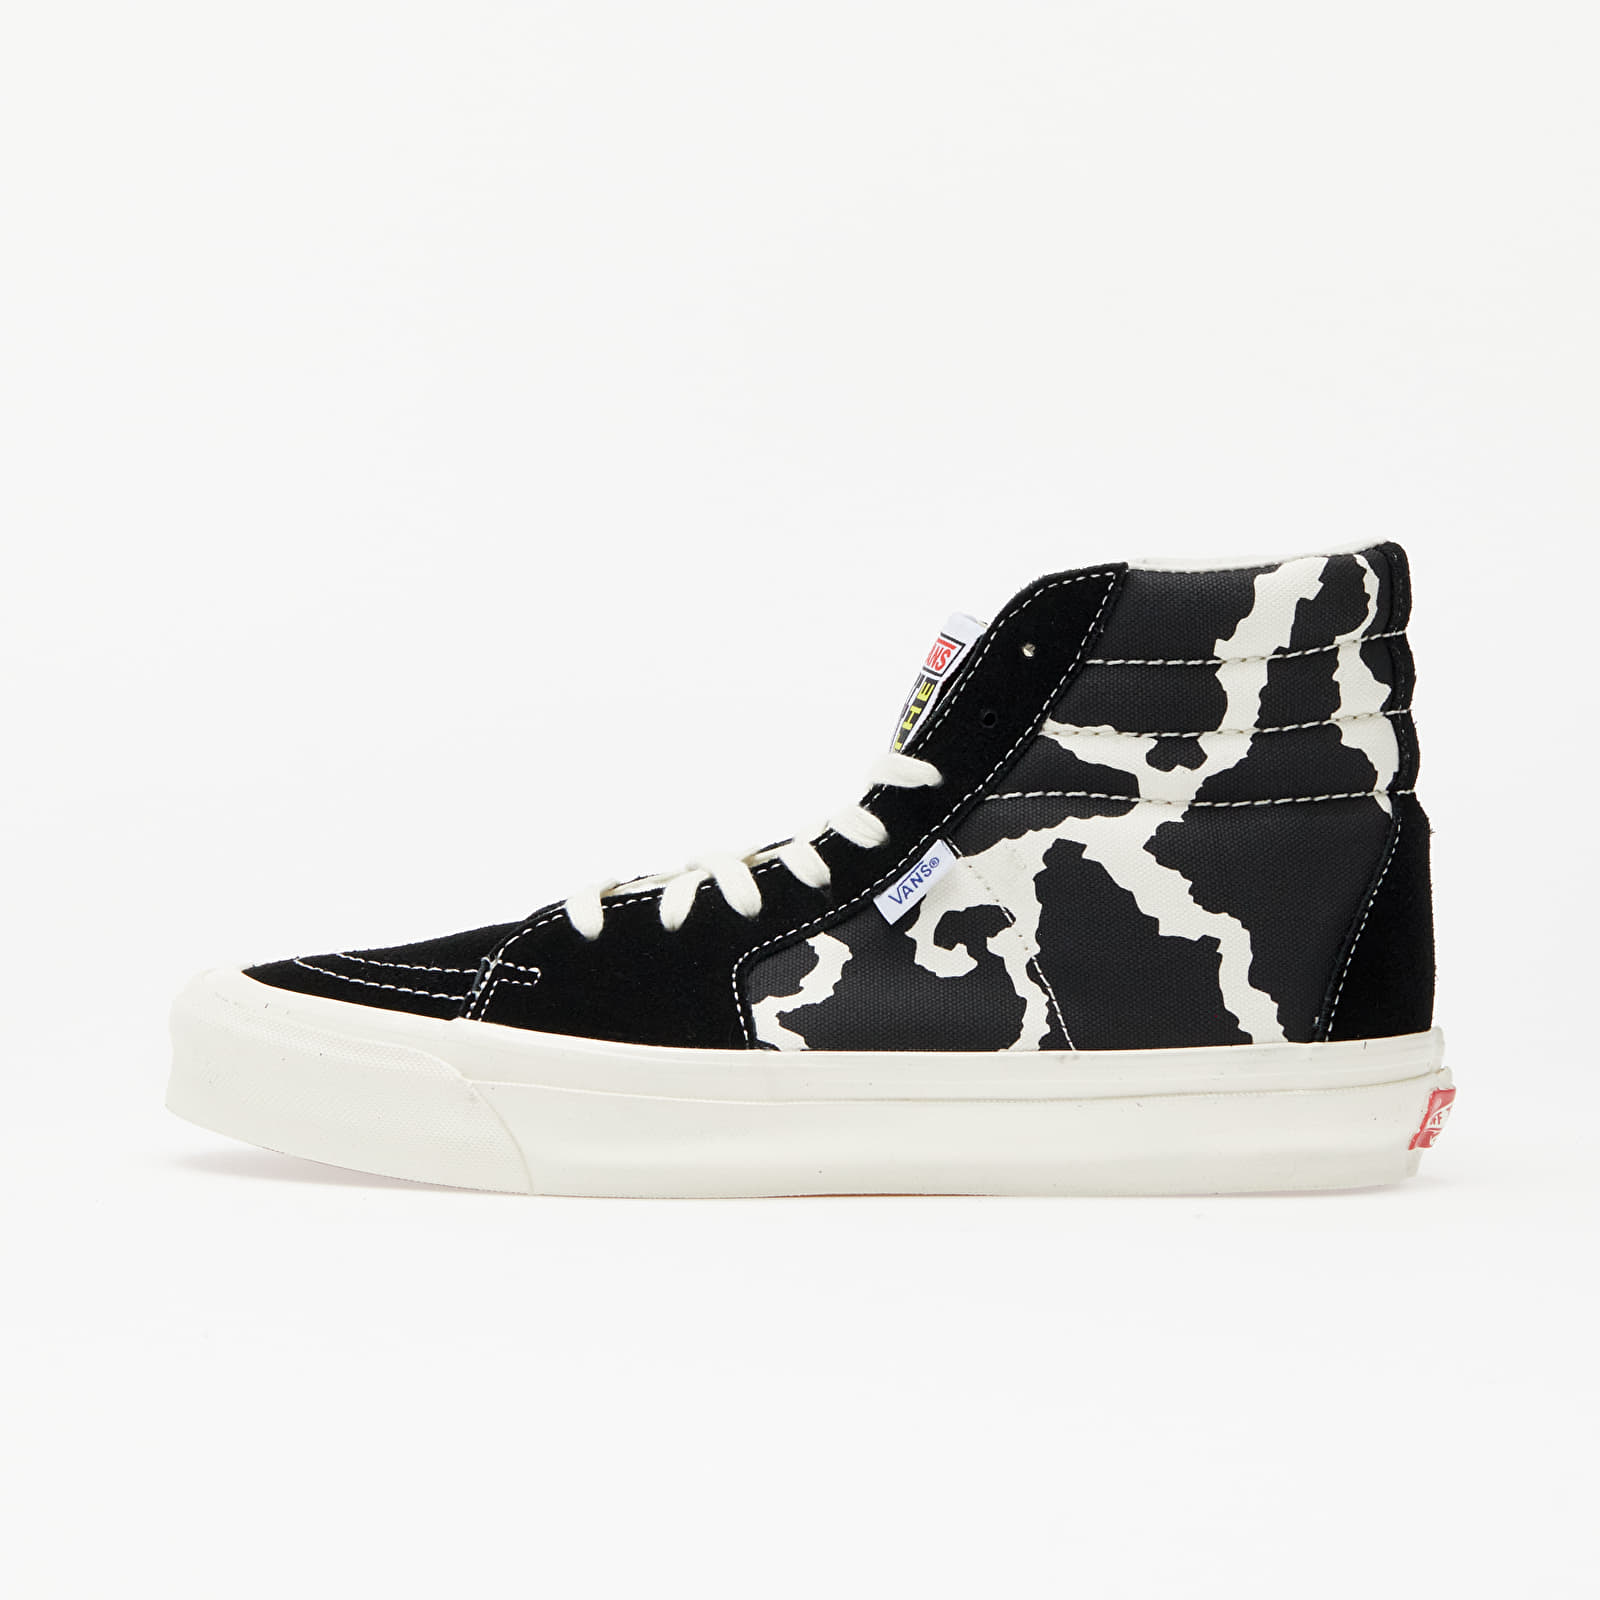 Vans Vault OG Style 38 NS LX (Suede/ Canvas) Classic White/ Black/ Marshmallow VN0A5HUU4MB1